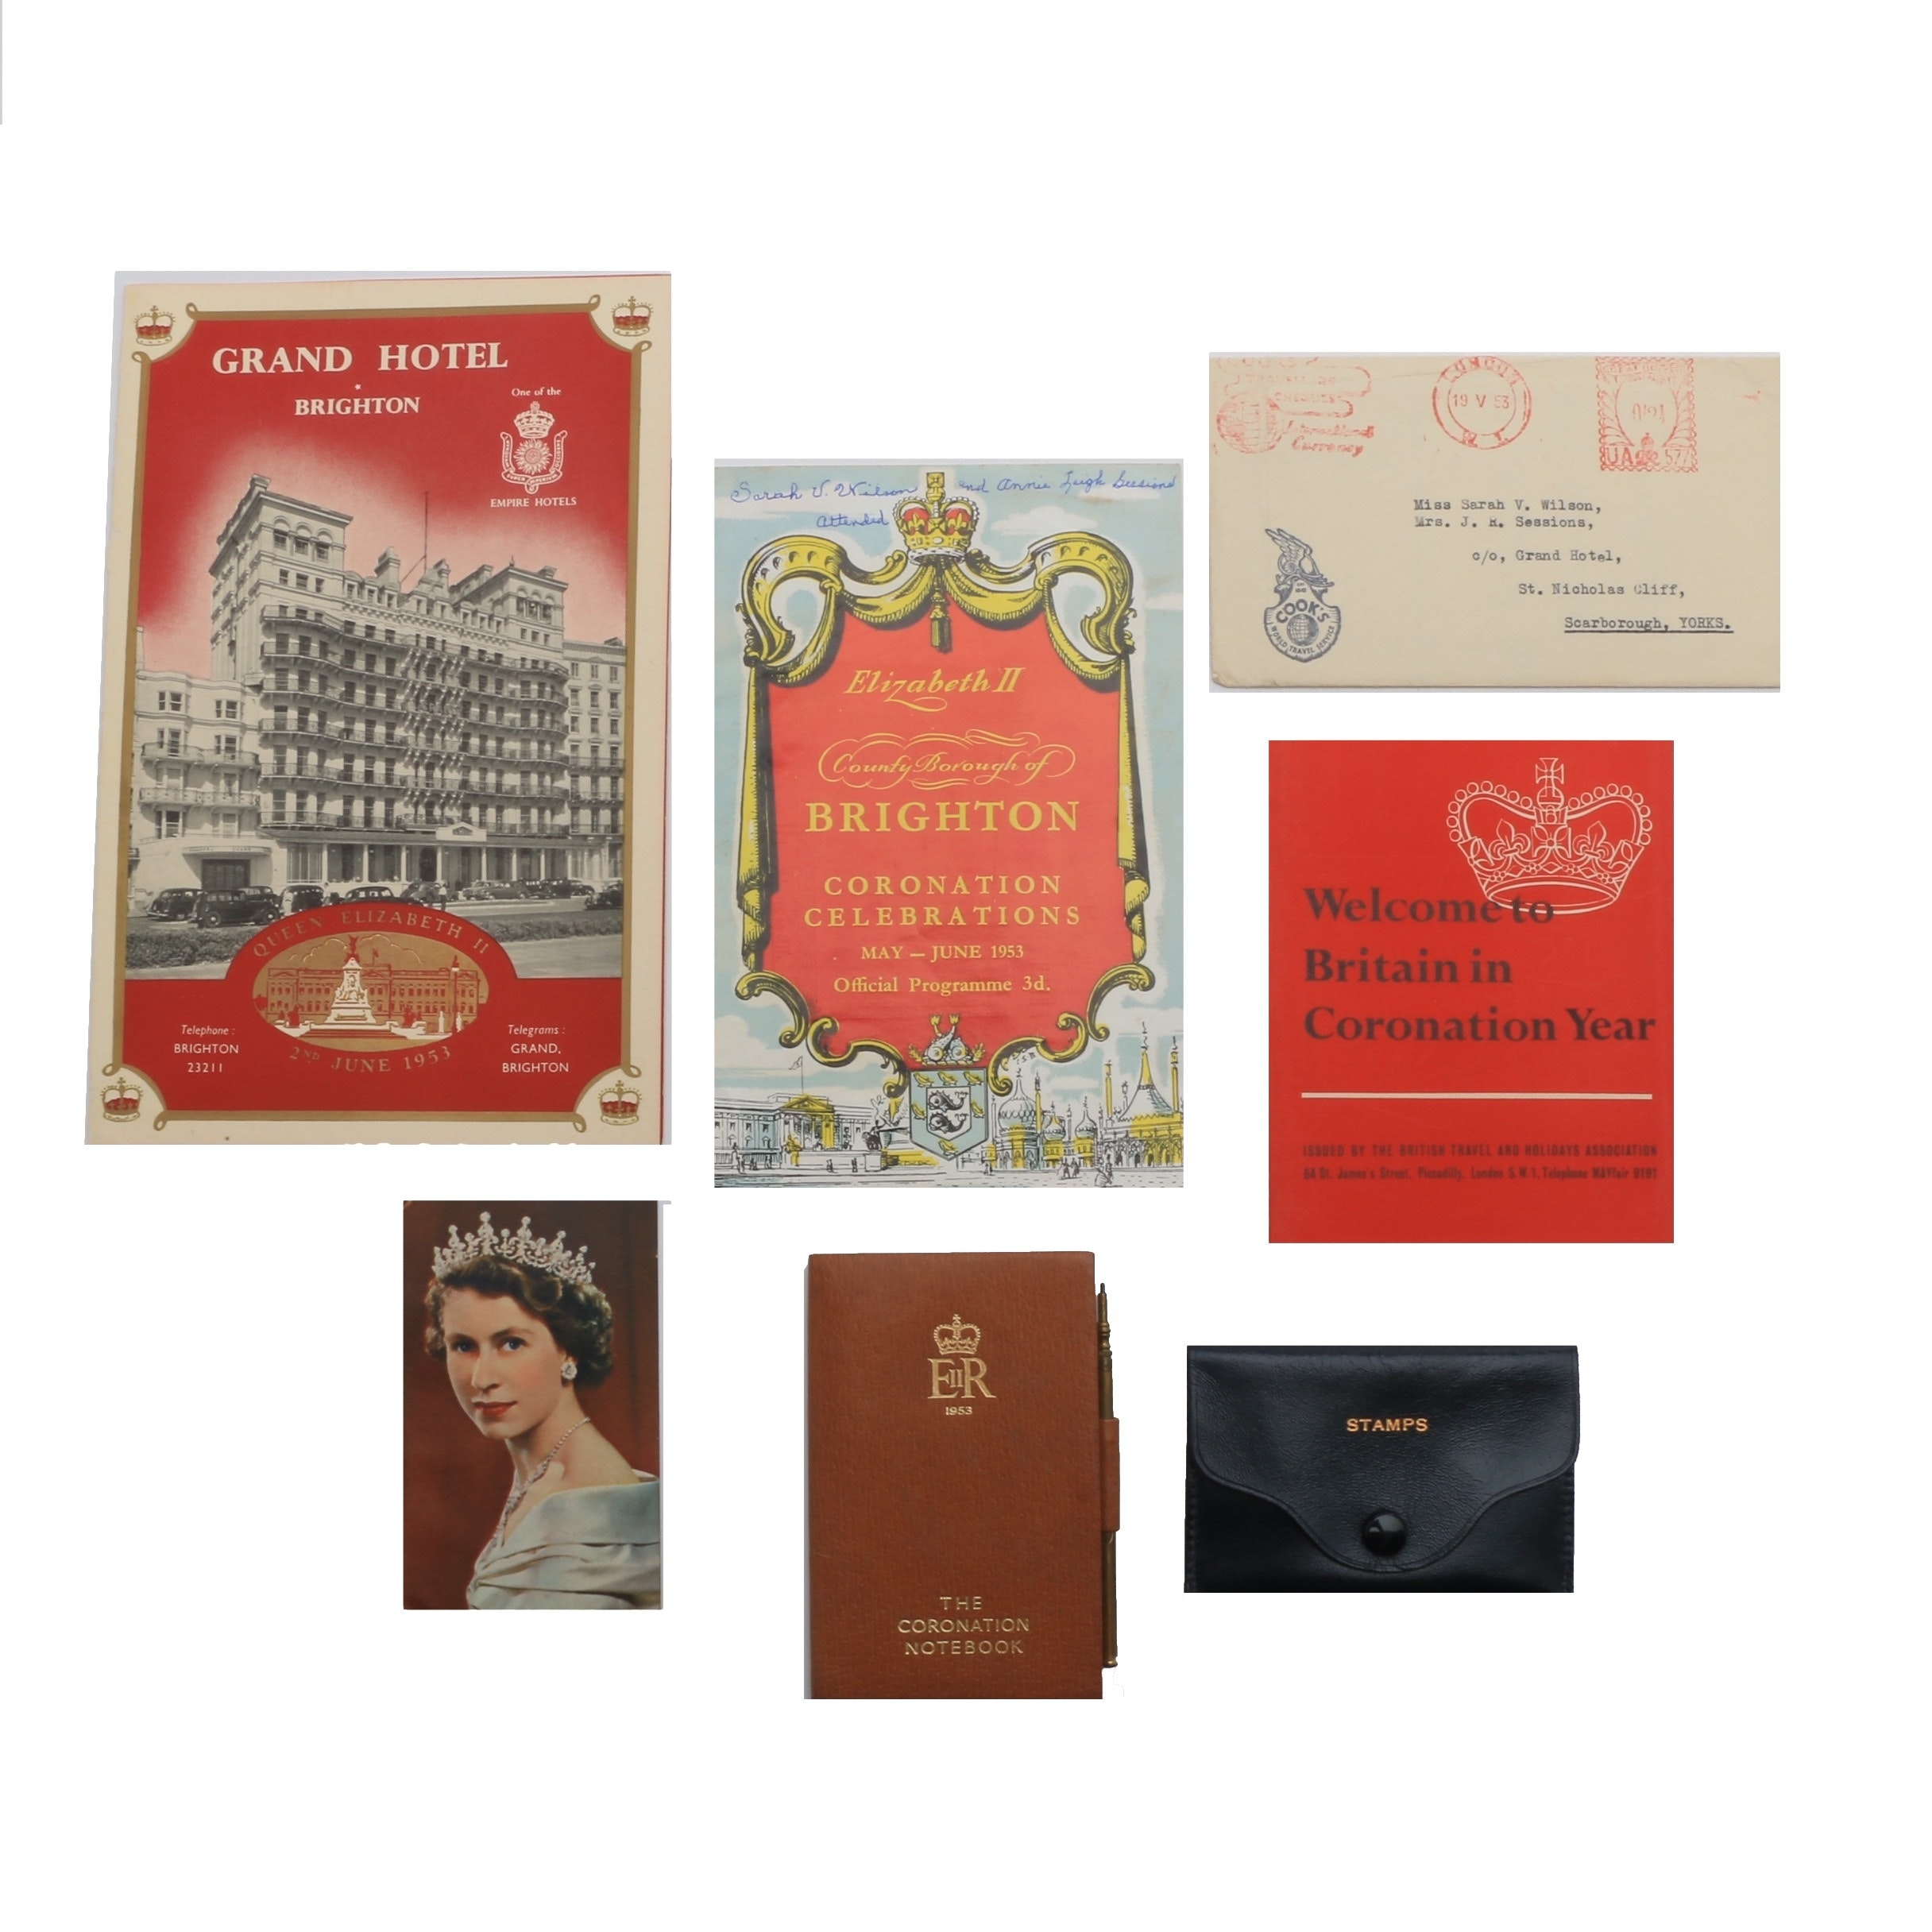 Ephemera from Queen Elizabeth II Coronation May-June 1953